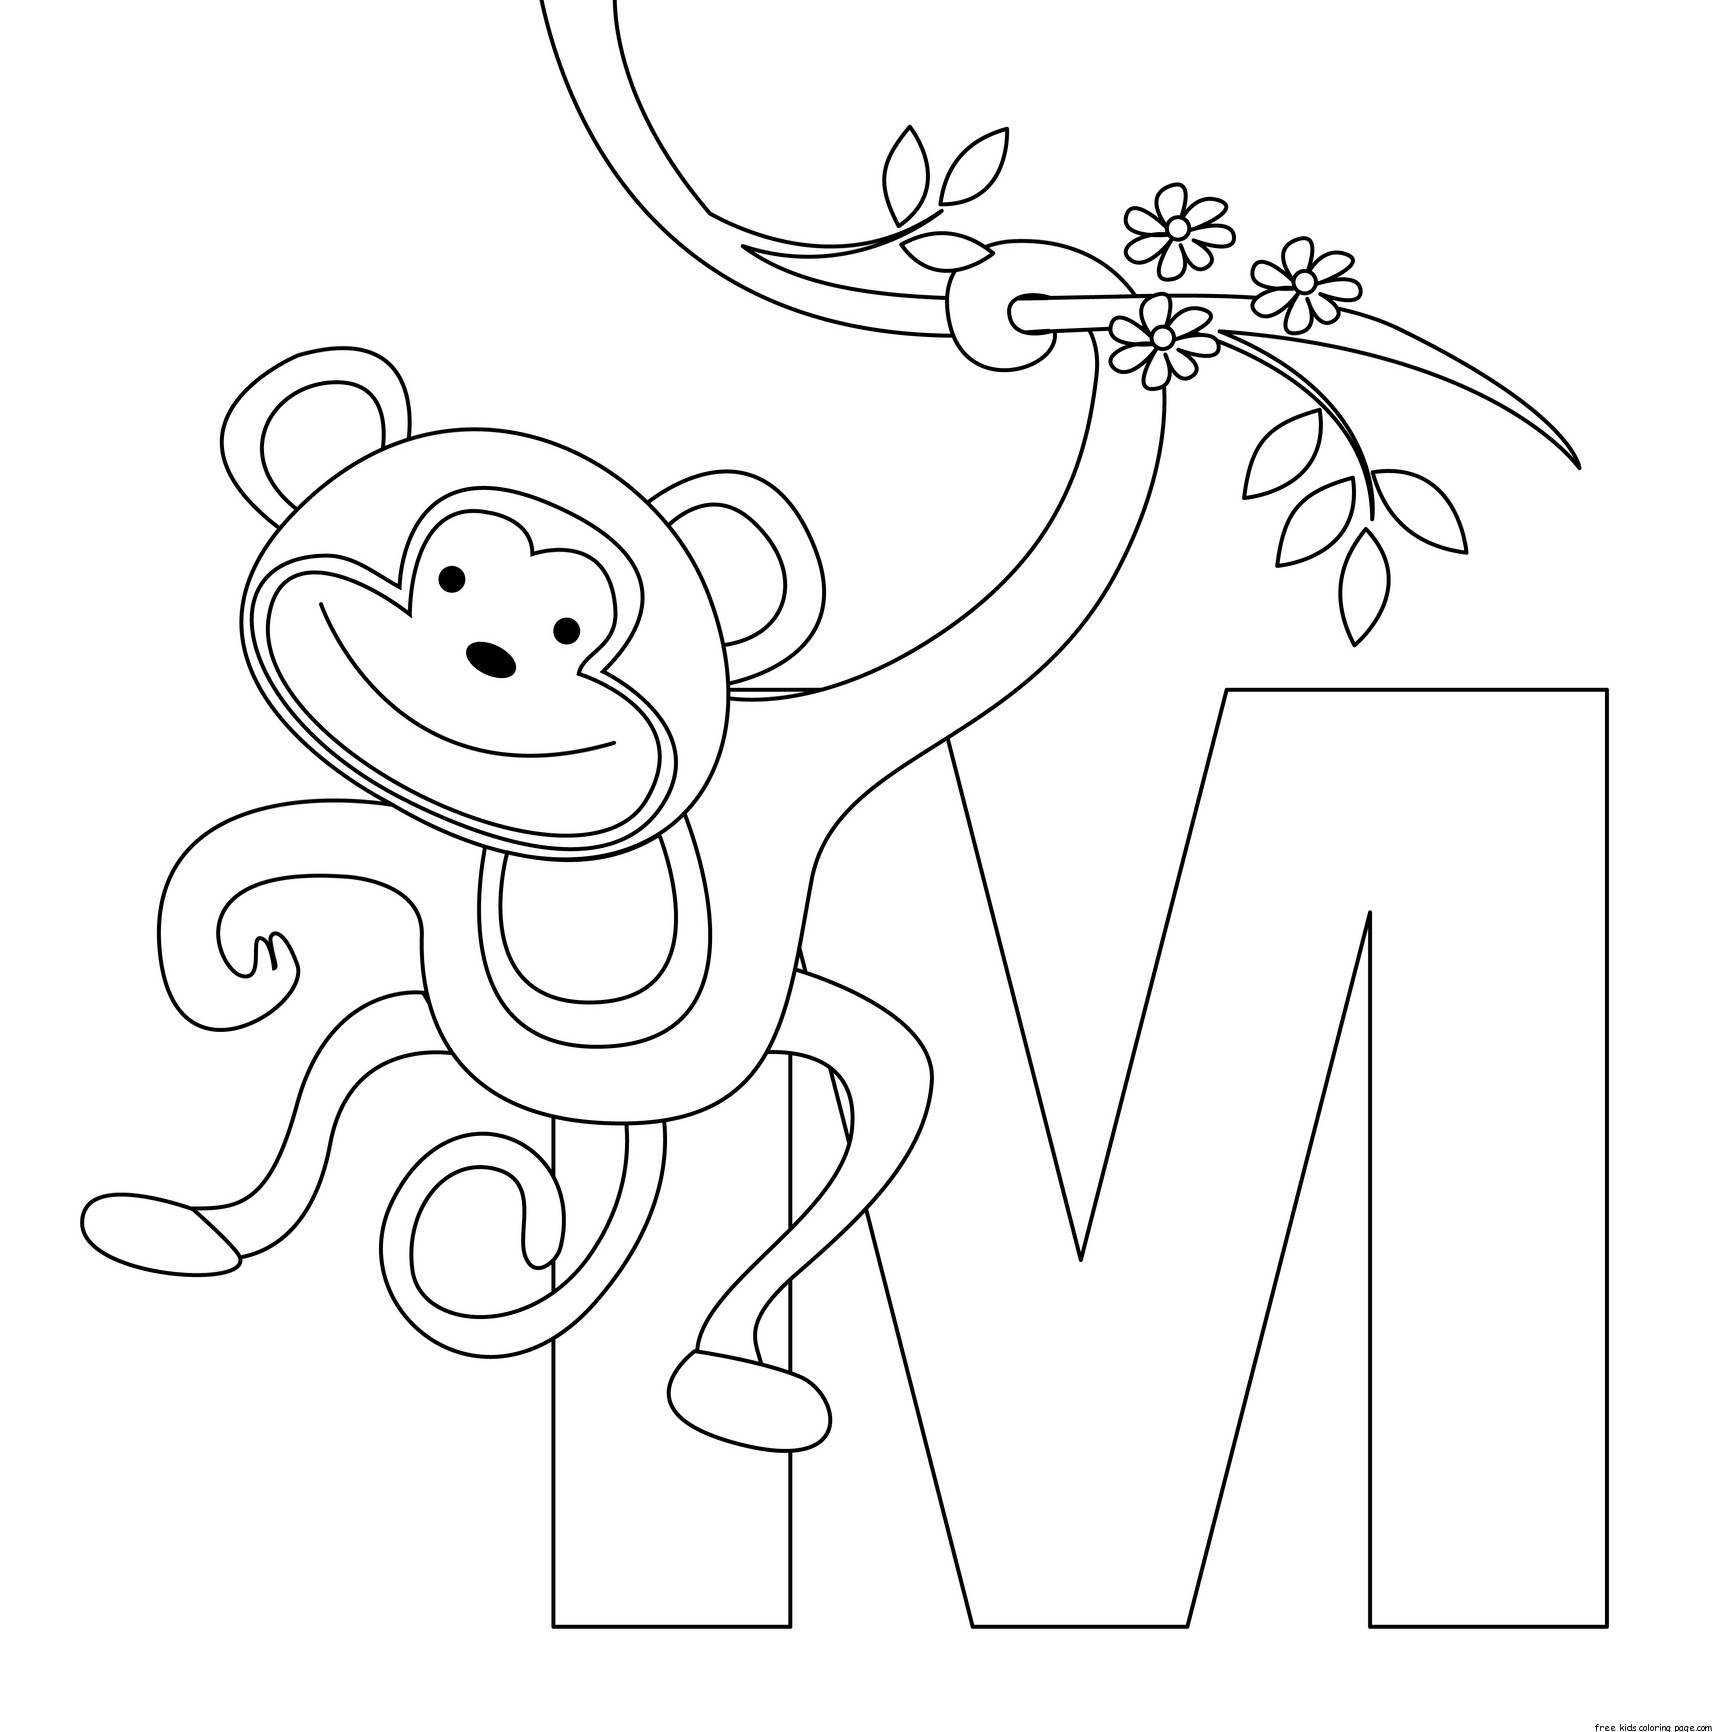 Printable animal alphabet letters m coloring pagesfree for Free printable alphabet coloring pages for kids